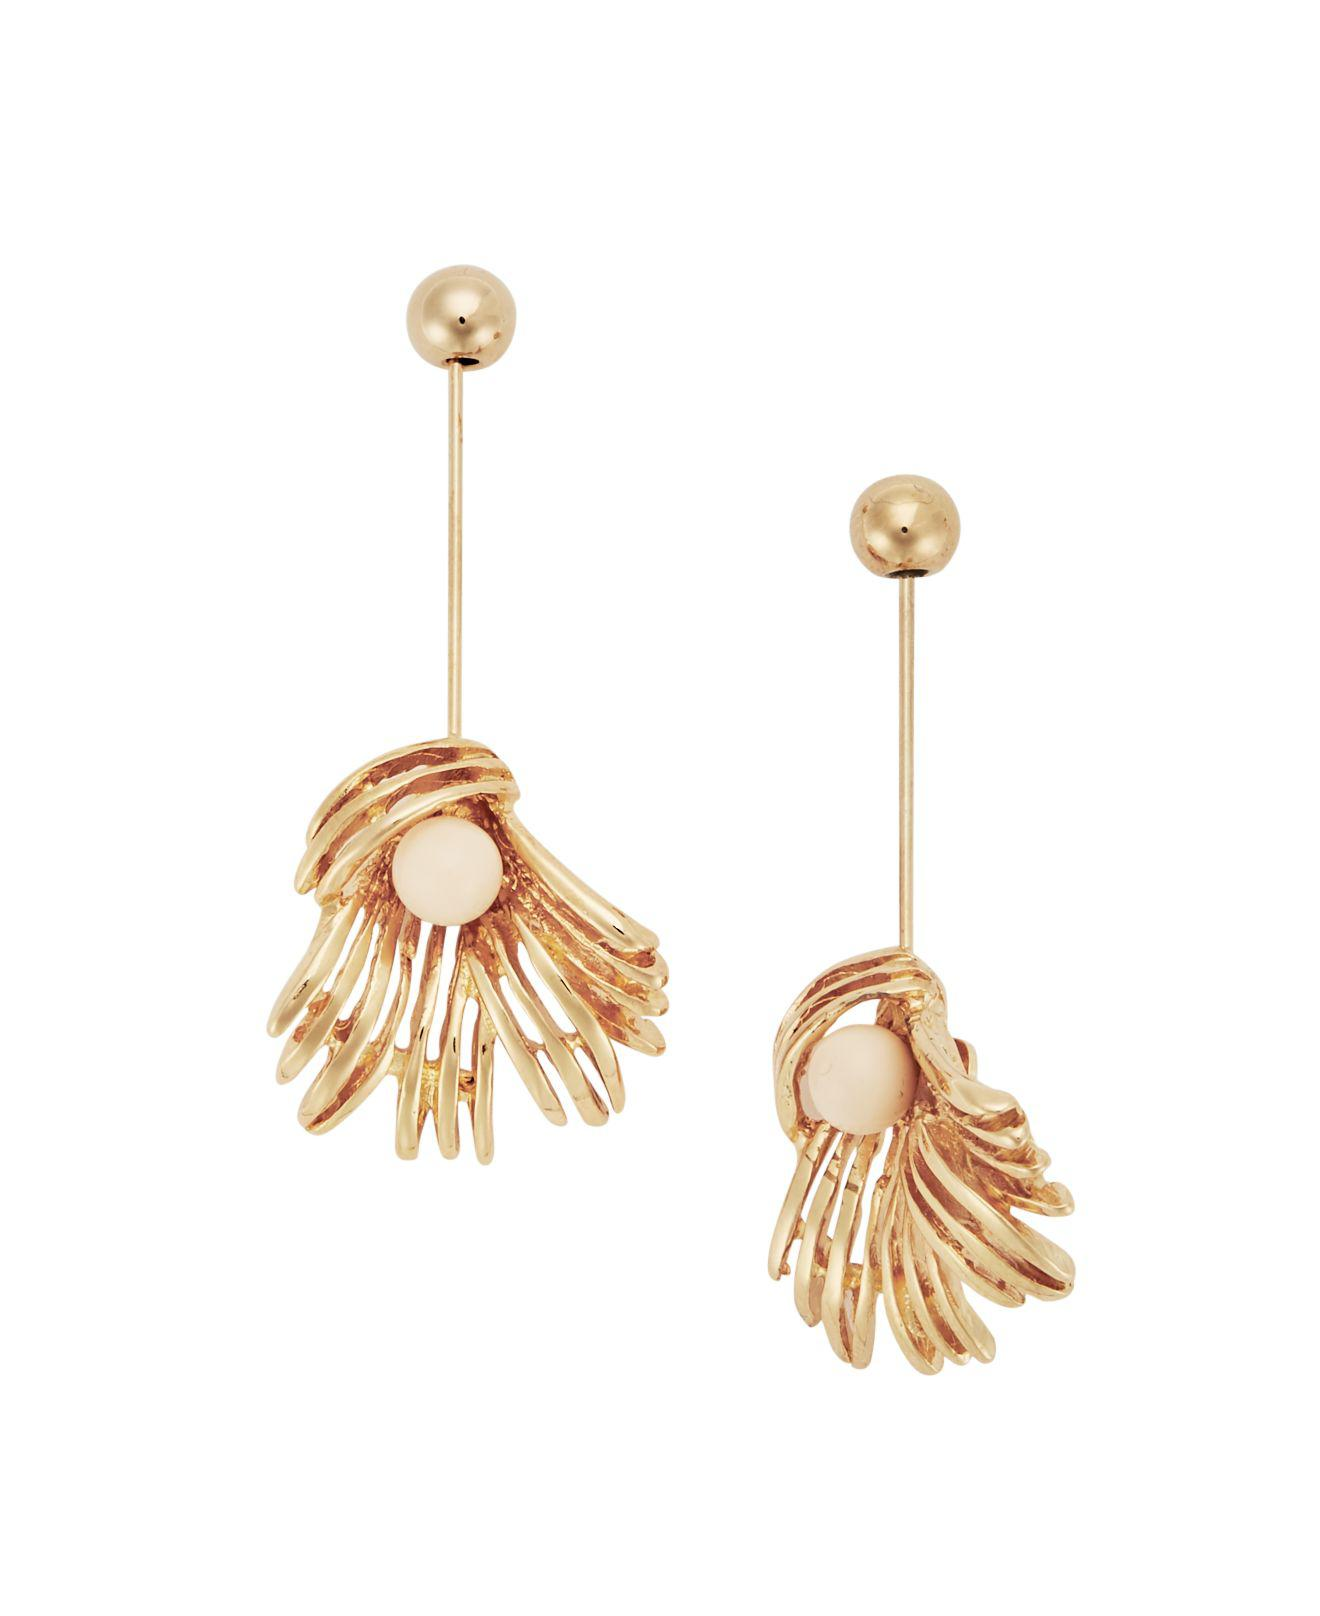 Marni Earrings with spheres and flowers 2ysKCX